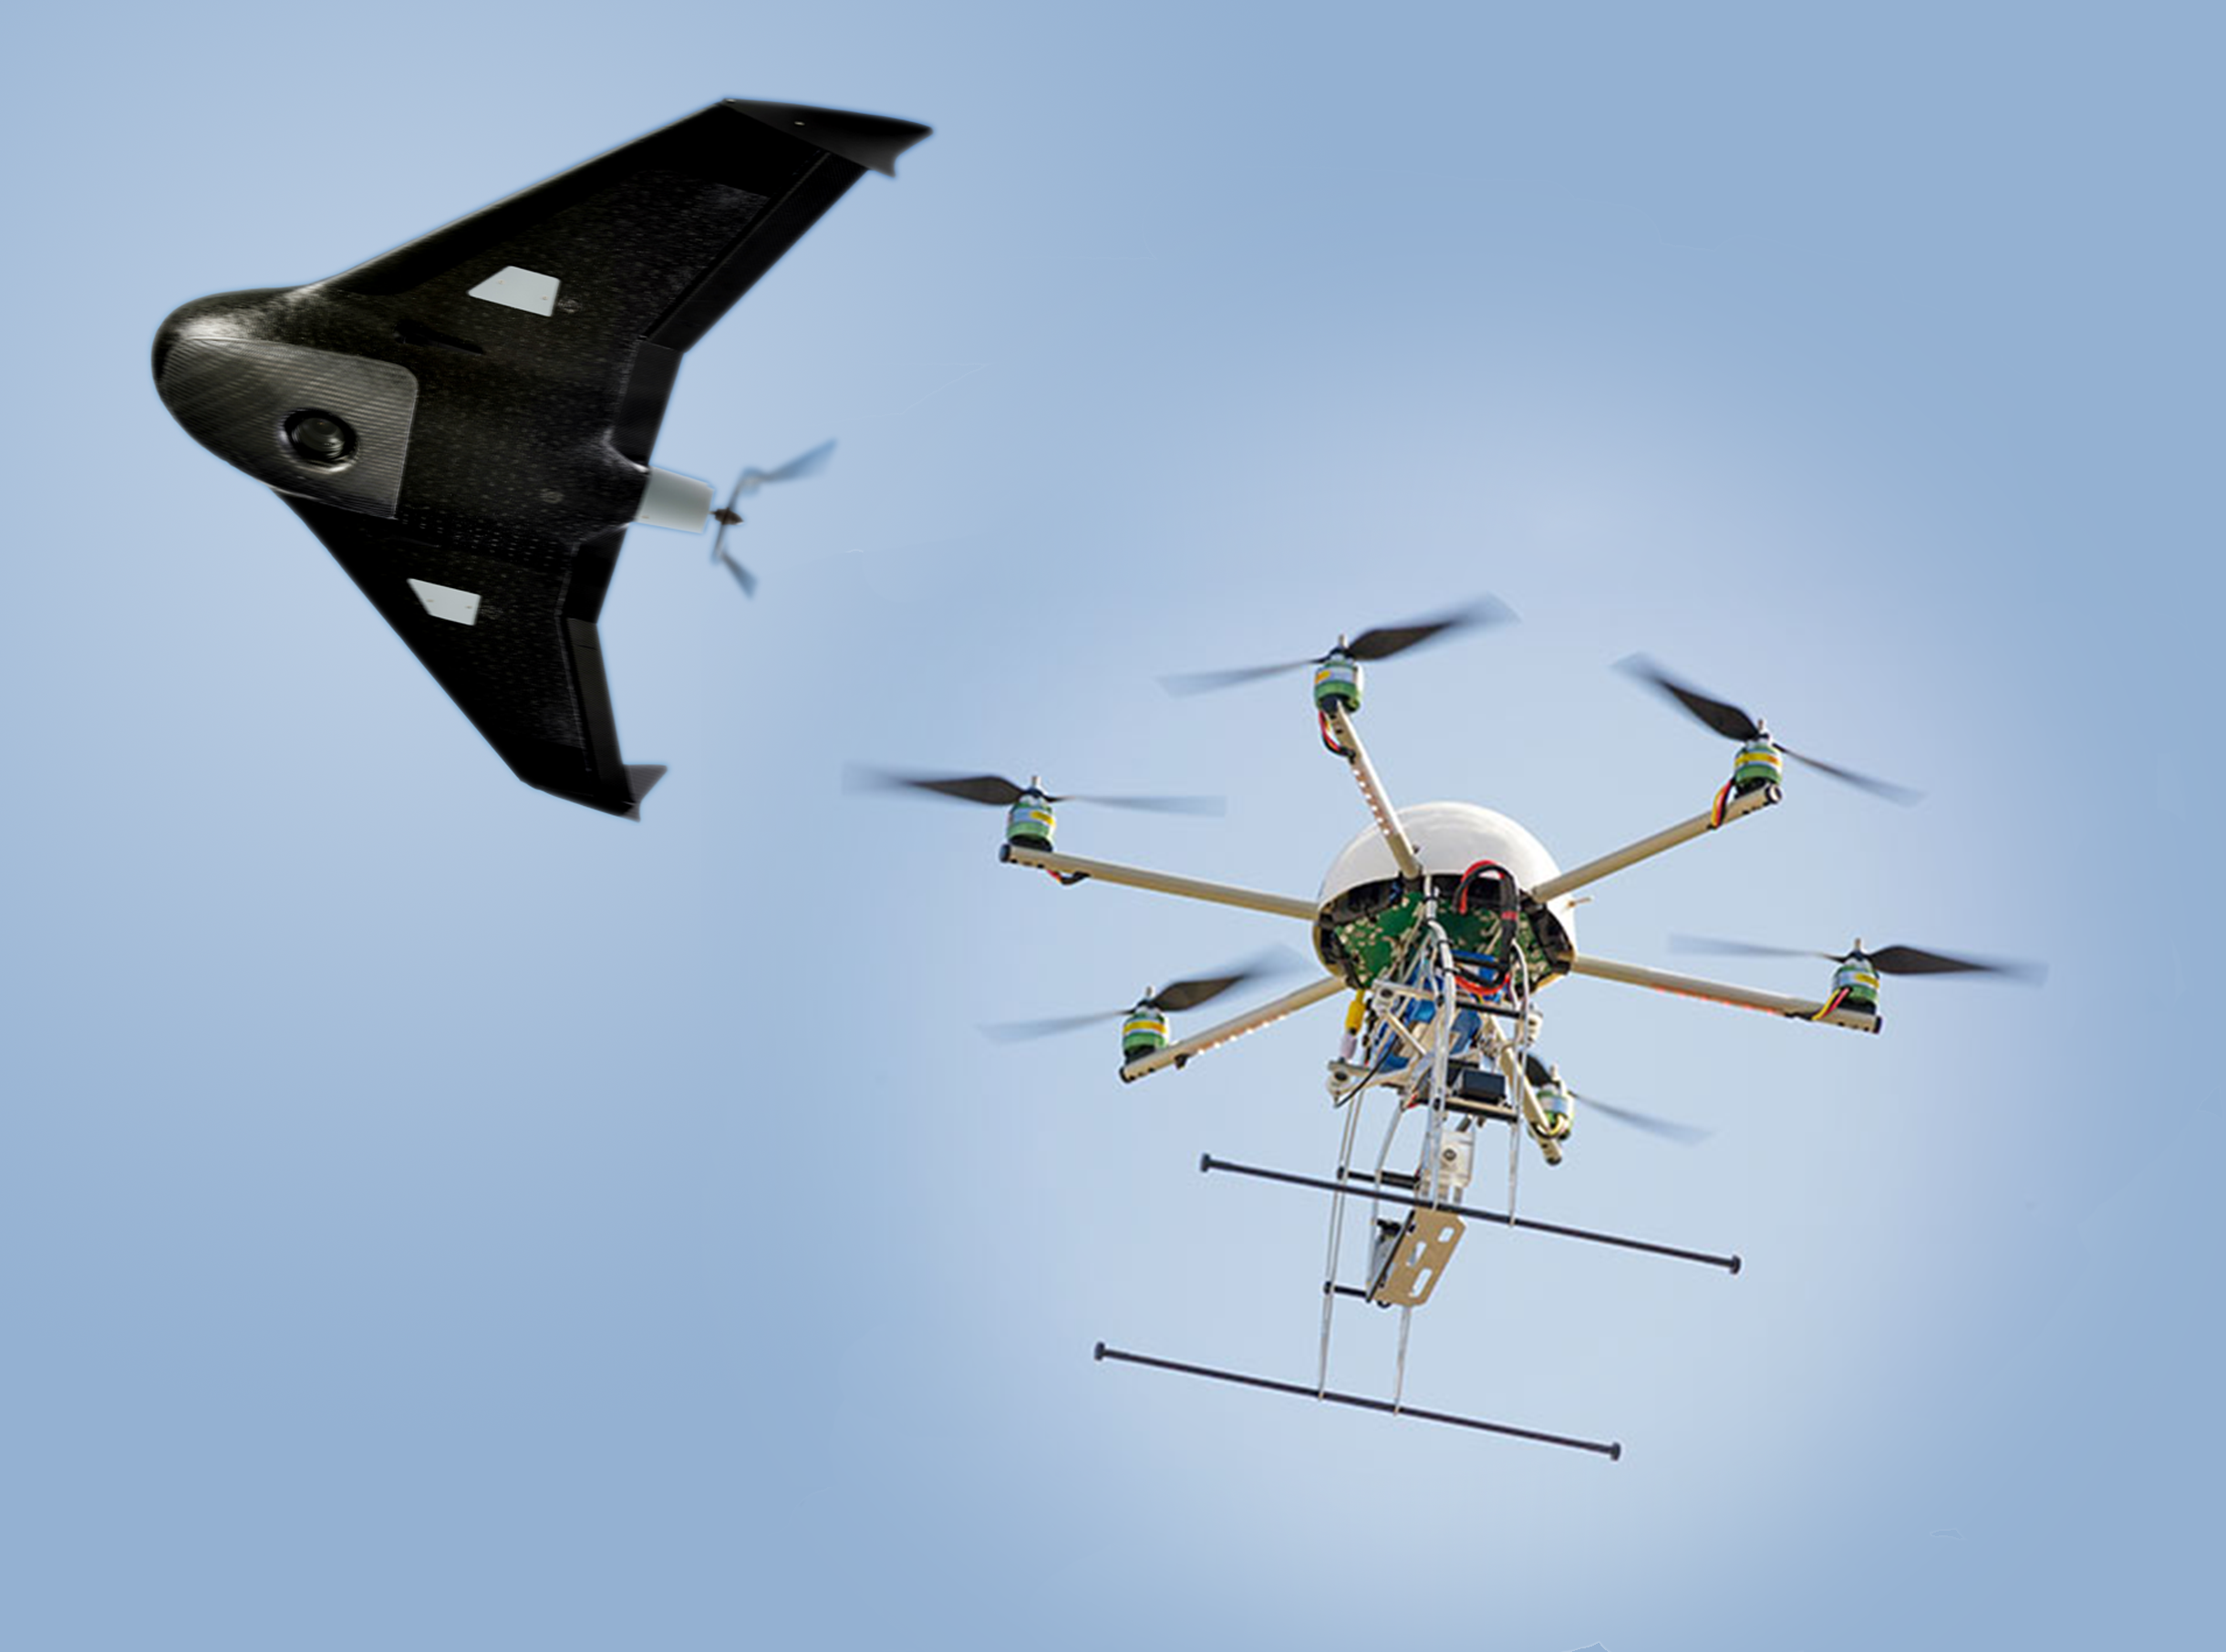 Fixed-Wing vs Multi-Rotor UAS Platforms for Survey Operations